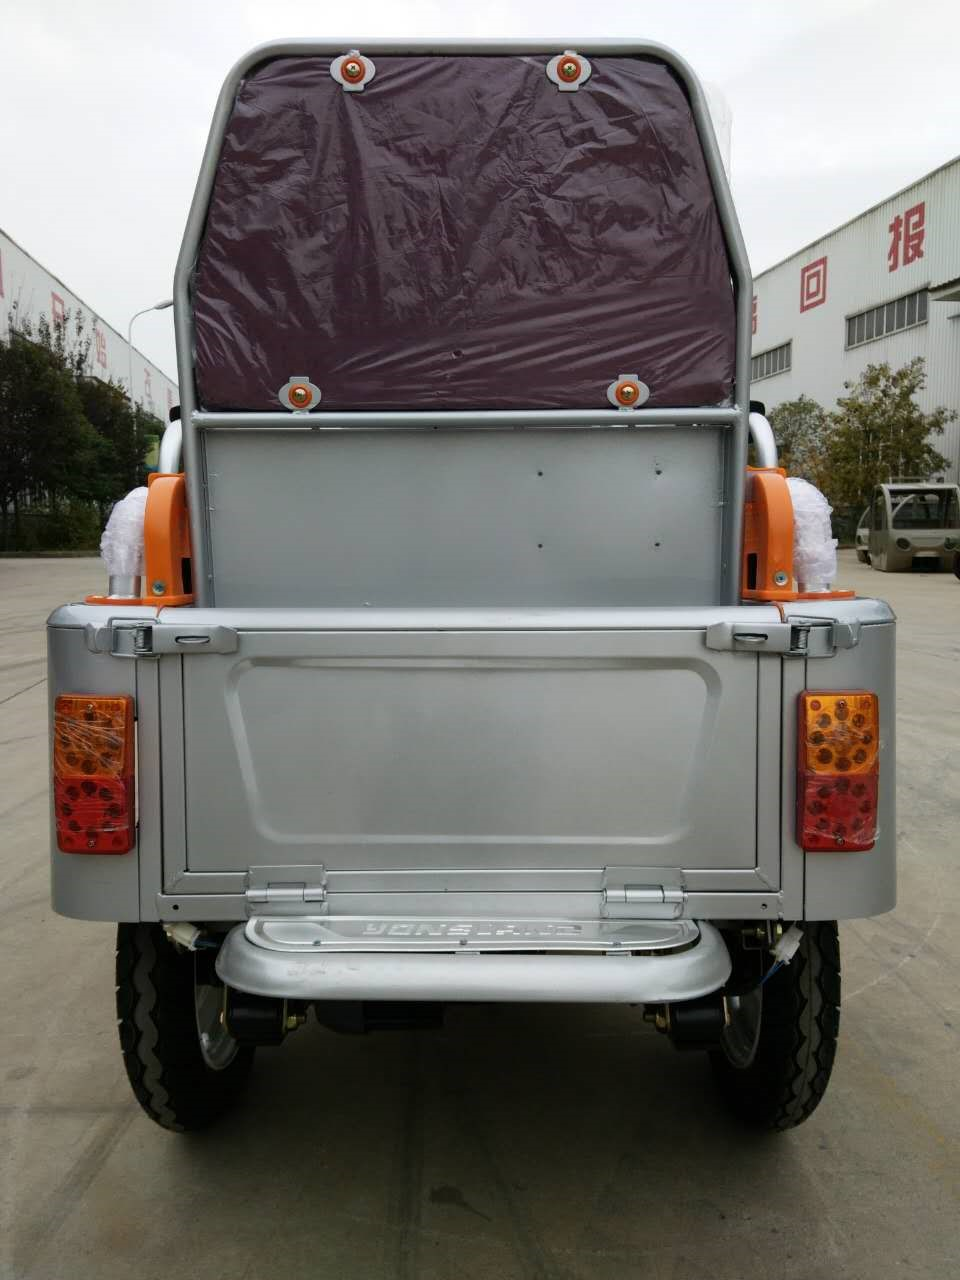 High quality Cargo Tricycle With Passenger Seat for Elders Quotes,China Cargo Tricycle With Passenger Seat for Elders Factory,Cargo Tricycle With Passenger Seat for Elders Purchasing